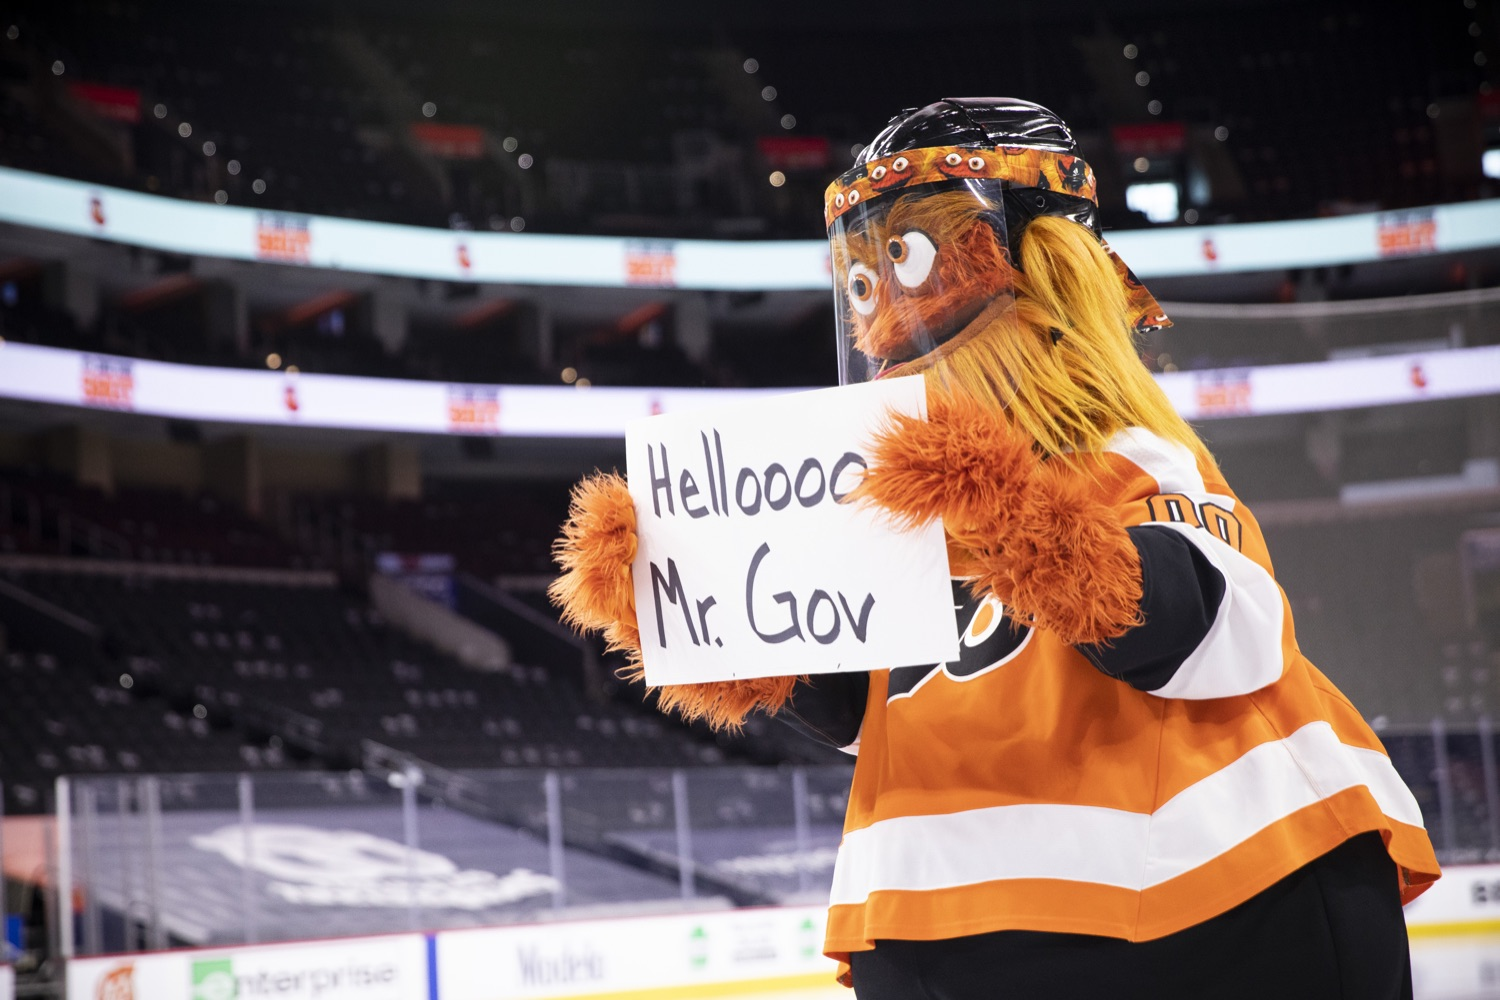 "<a href=""https://filesource.wostreaming.net/commonwealthofpa/photo/18727_gov_vaccines_dz_007.jpg"" target=""_blank"">⇣ Download Photo<br></a>Philadelphia Flyers' mascot Gritty at the press conference.   Governor Tom Wolf today visited the Philadelphia Flyers organization at the Wells Fargo Center in Philadelphia to discuss COVID-19 vaccine efforts in Pennsylvania. The Flyers recently launched a comprehensive COVID-19 vaccine campaign, Take Your Shot, encouraging Pennsylvanians to get vaccinated.  Philadelphia, PA  MAY 3, 2021"